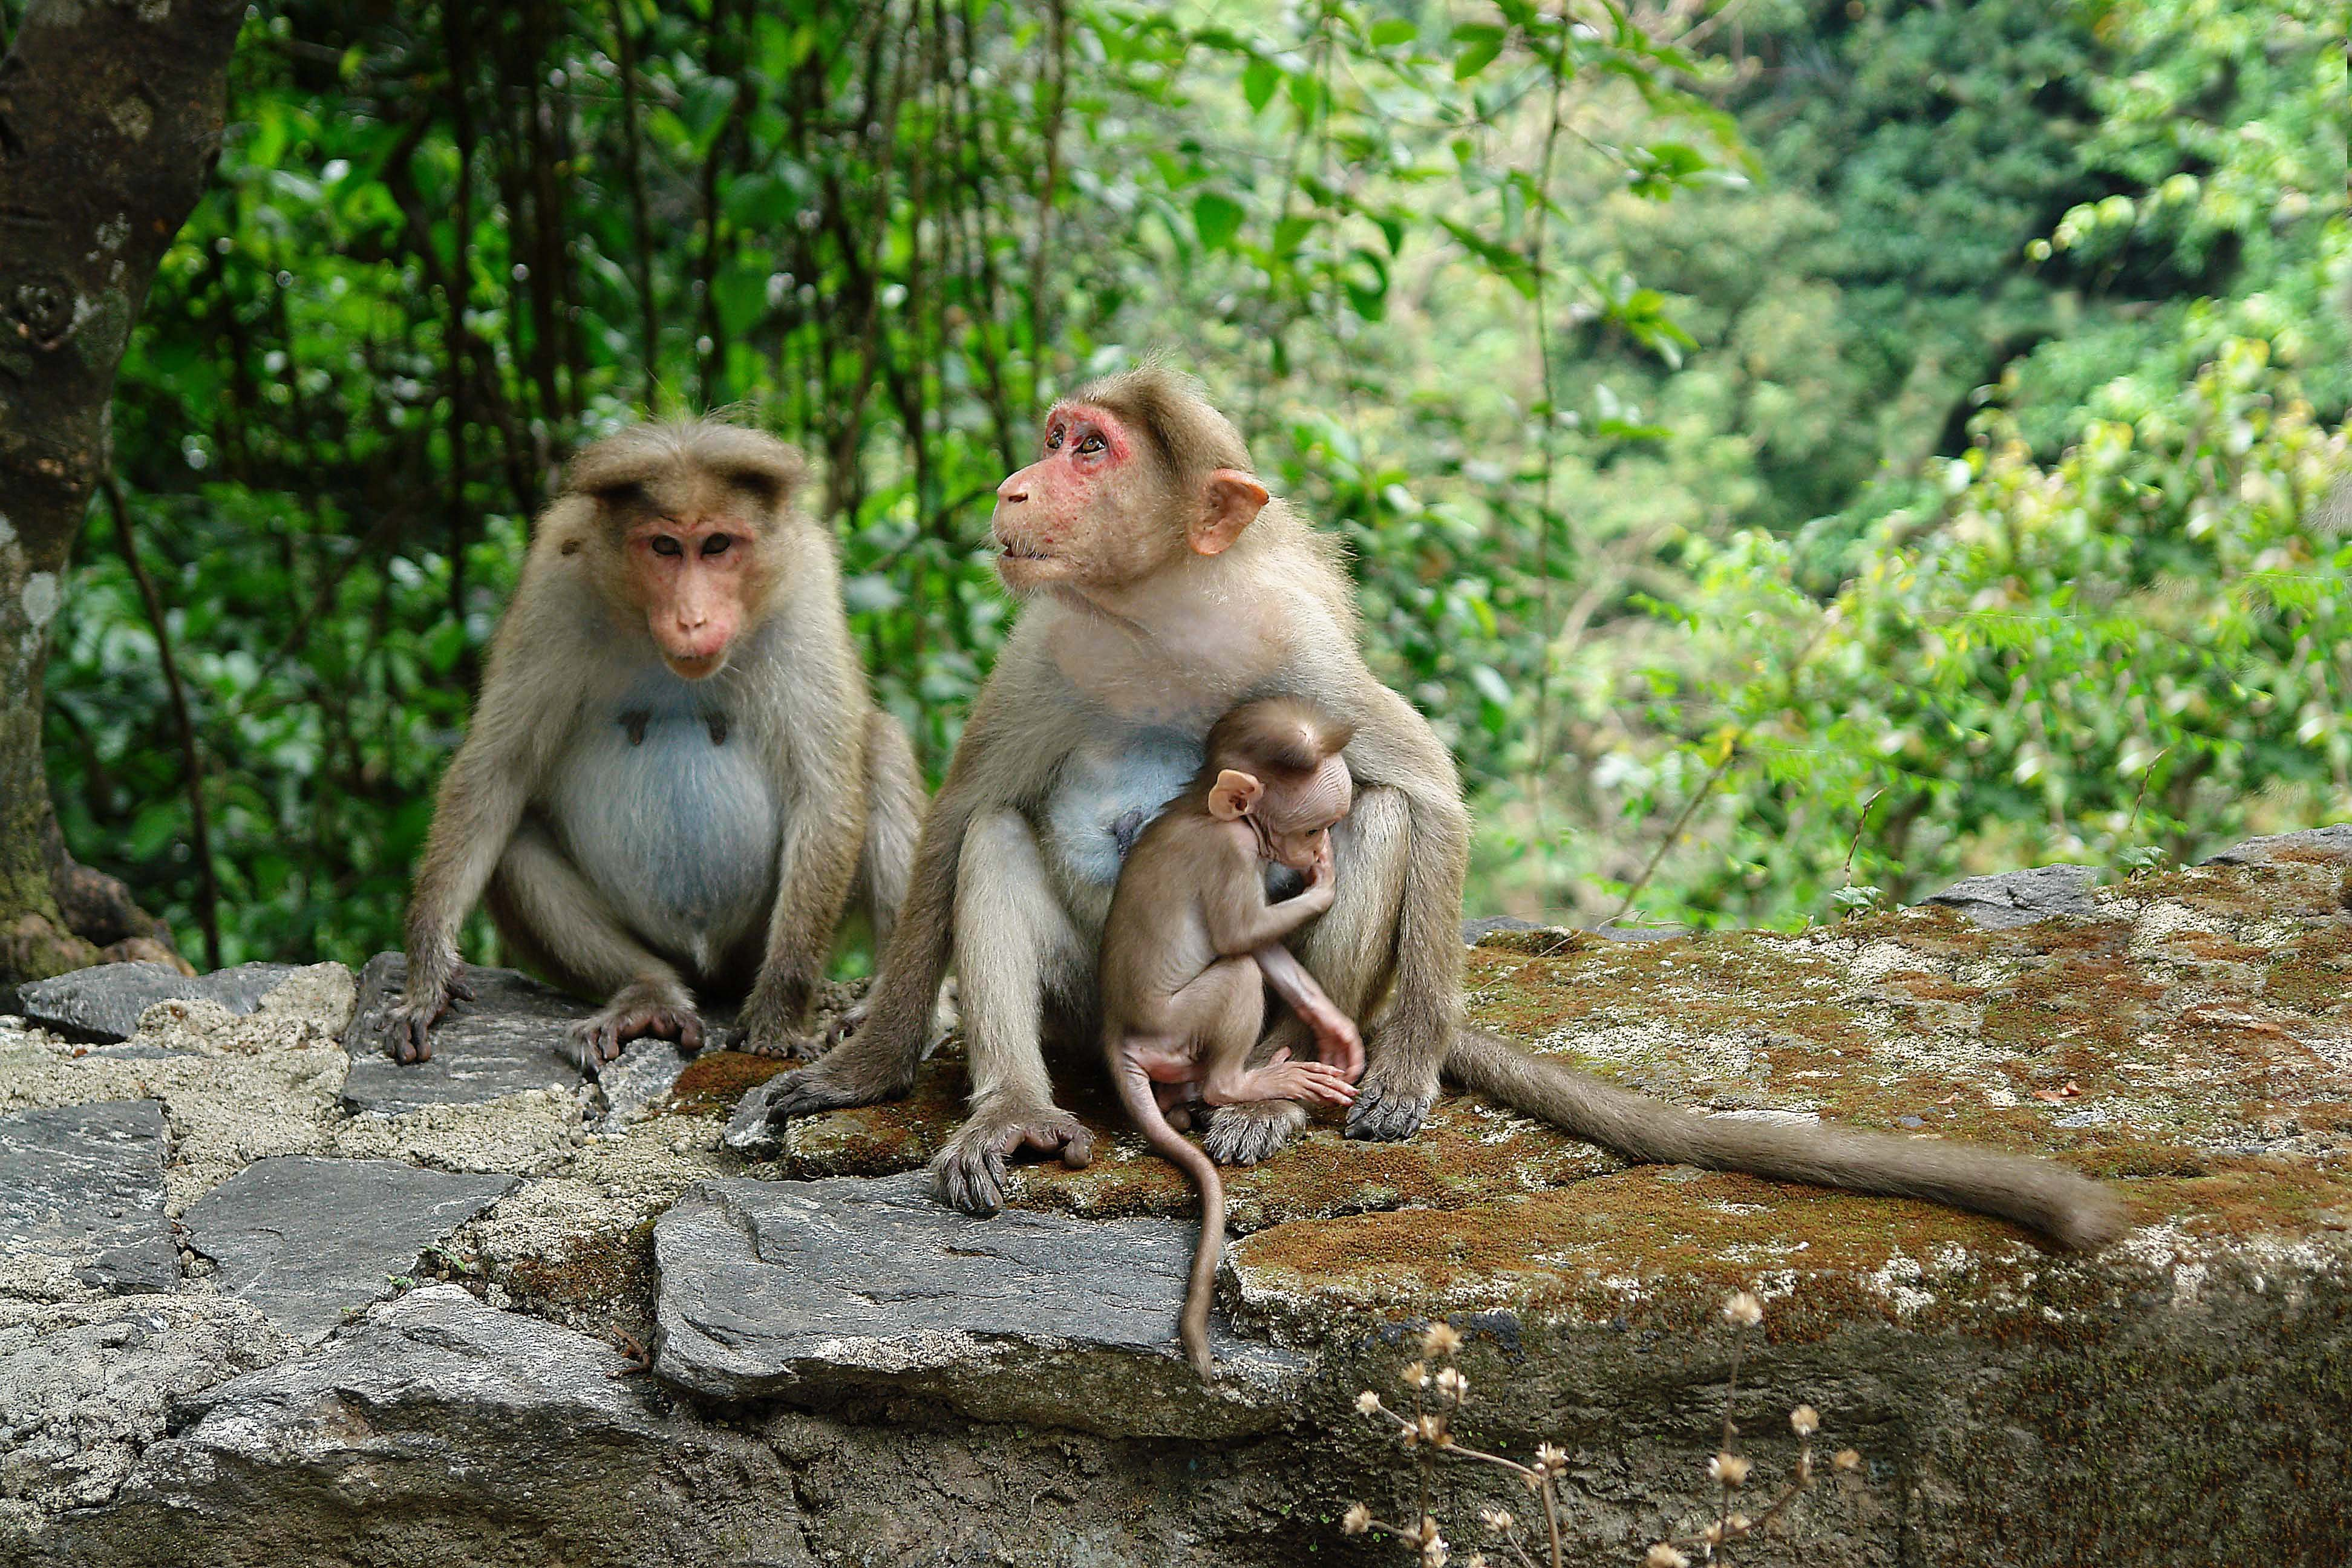 Two adults and one baby monkey sit on a stone wall in the jungles of Kerala